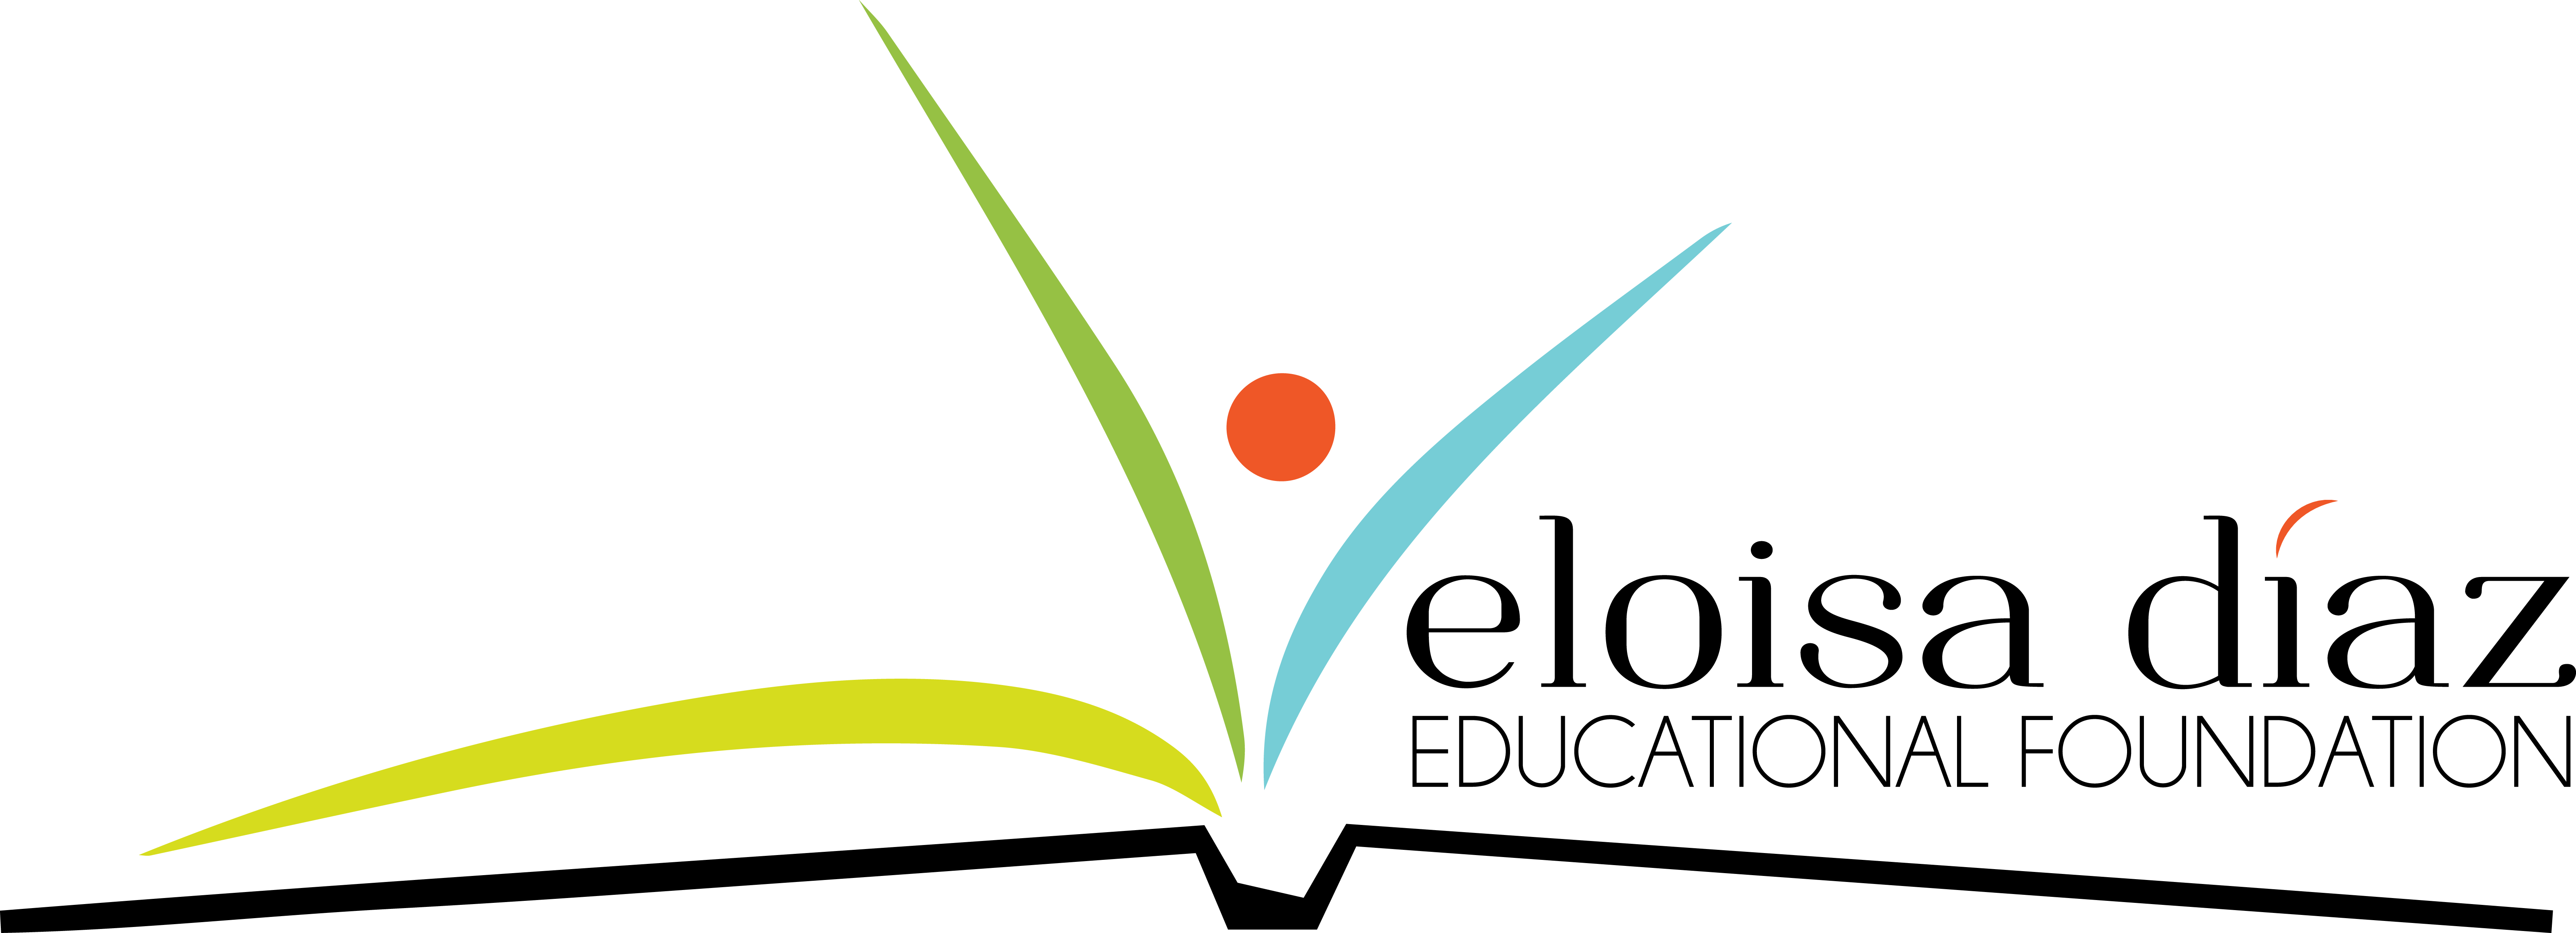 Eloisa Diaz Educational Foundation